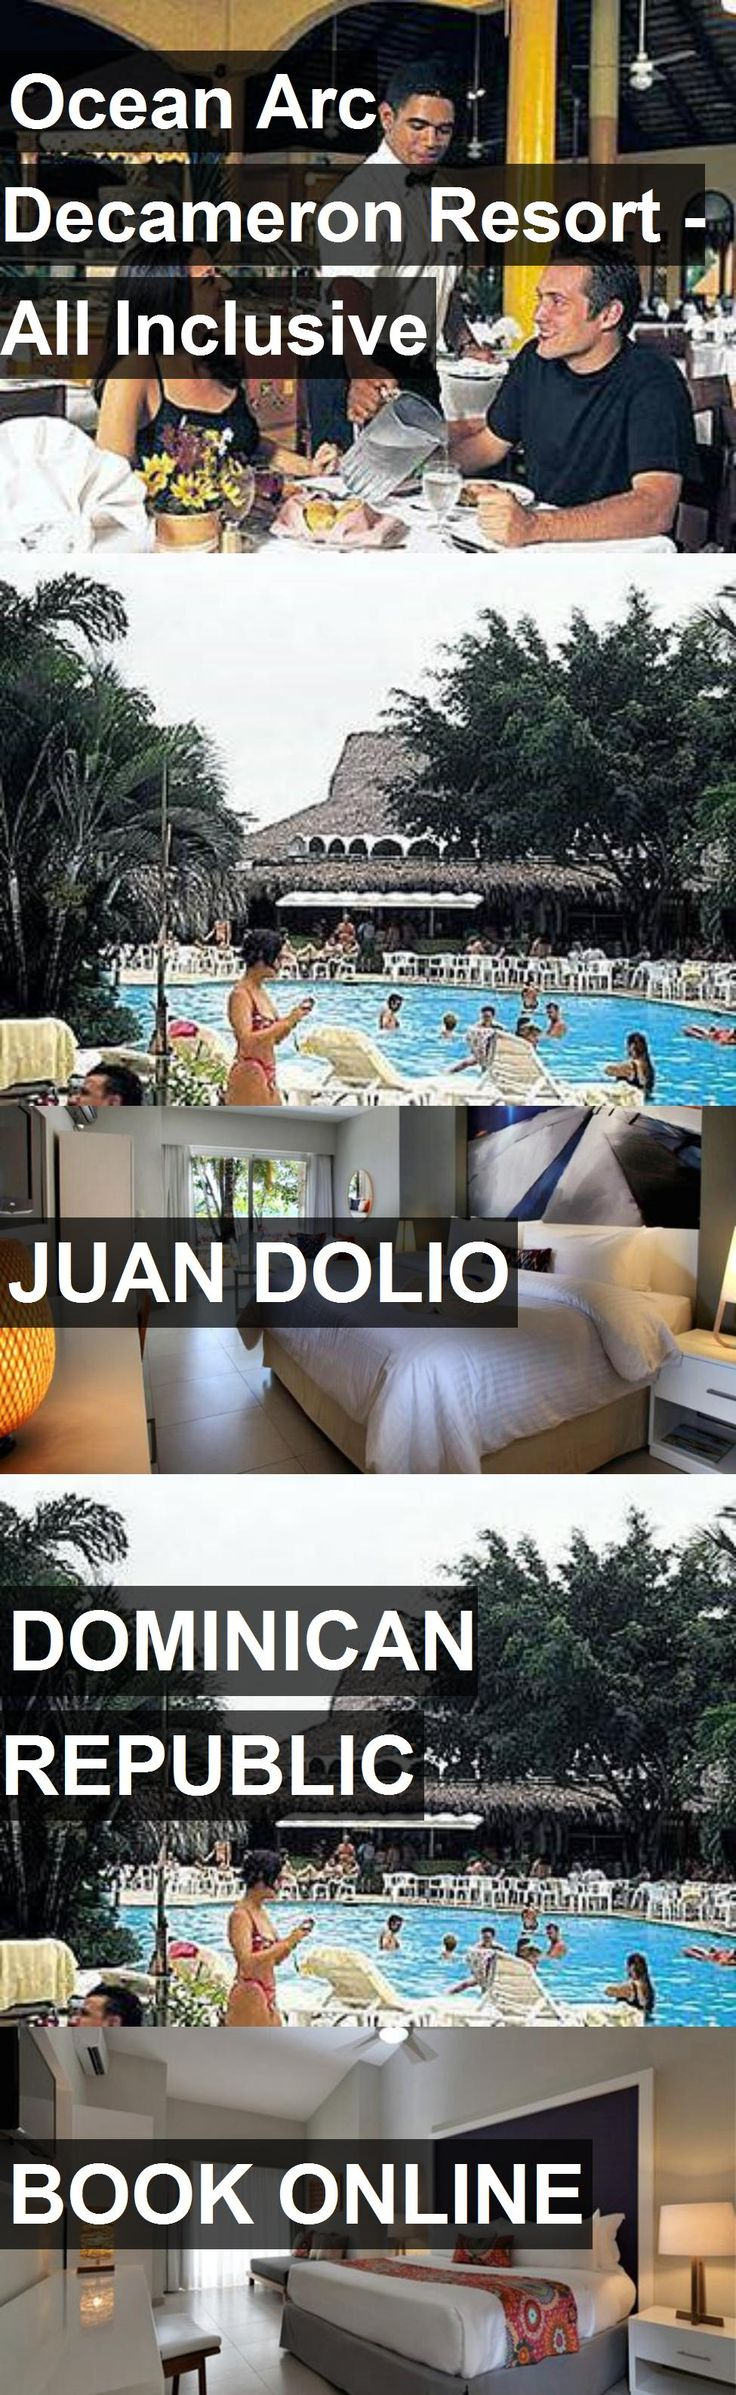 Hotel Ocean Arc Decameron Resort - All Inclusive in Juan Dolio, Dominican Republic. For more information, photos, reviews and best prices please follow the link. #DominicanRepublic #JuanDolio #travel #vacation #hotel